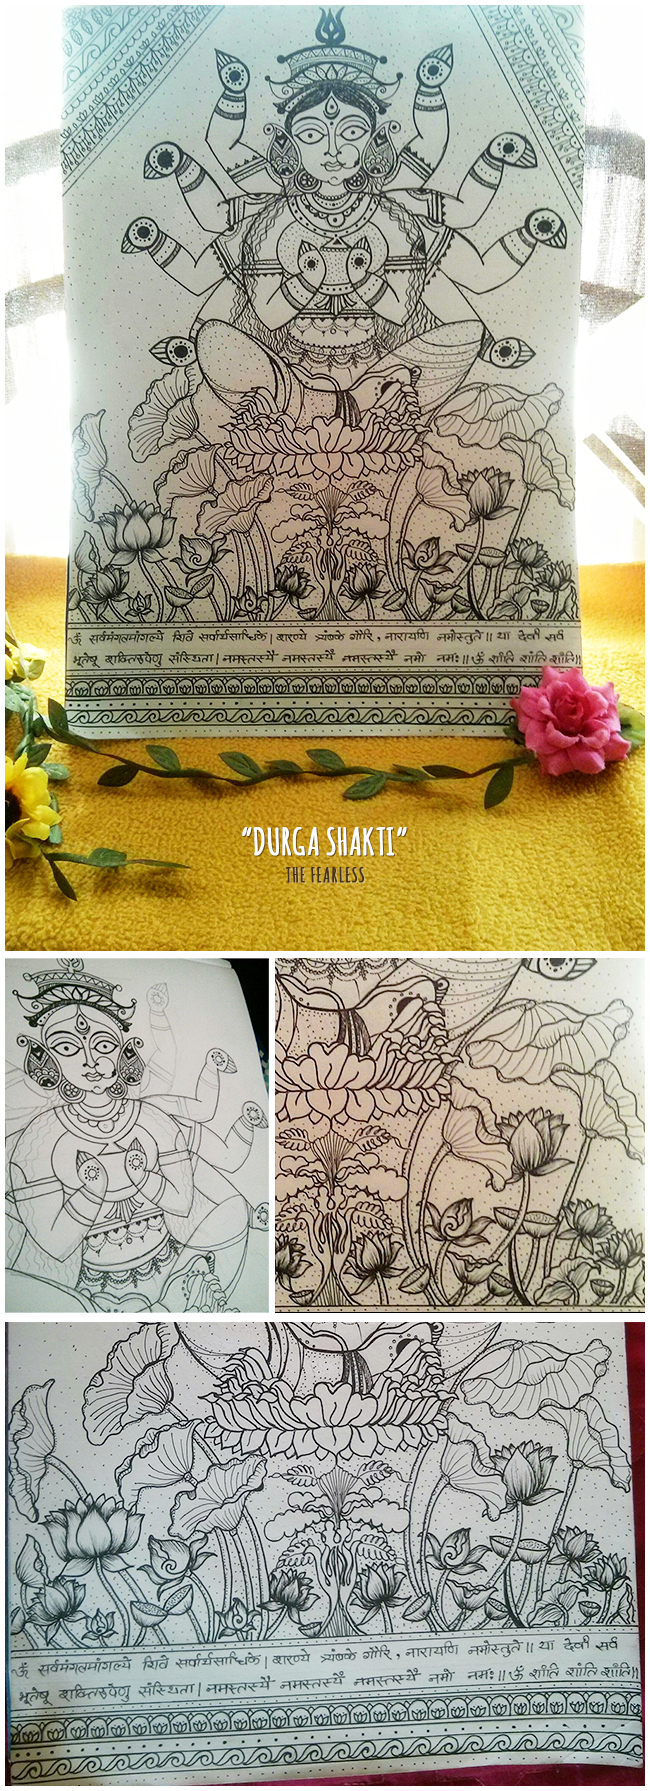 Weaving Memories, Durga, Durga Shakti, Shakti, Parvati Forms, Goddesses, Indian Mythology, Mythology, Madhubani, Madhubani Artwork, Artwork, Penwork, Artline, Me Without You is Incomplete, Indian Artwork, Madhubani Form, Artform, Artist, Giving Form to my Imaginations, Art, Thoughts, Doodles, Love, Inspiration, Quotes, Happiness, Recipes, Sowing Happiness, Spreading Love, Positive Thoughts, Gulmohar Doodles, Puneeta Prakash Blog, Puneeta Prakash, Personal Blog, Blogger